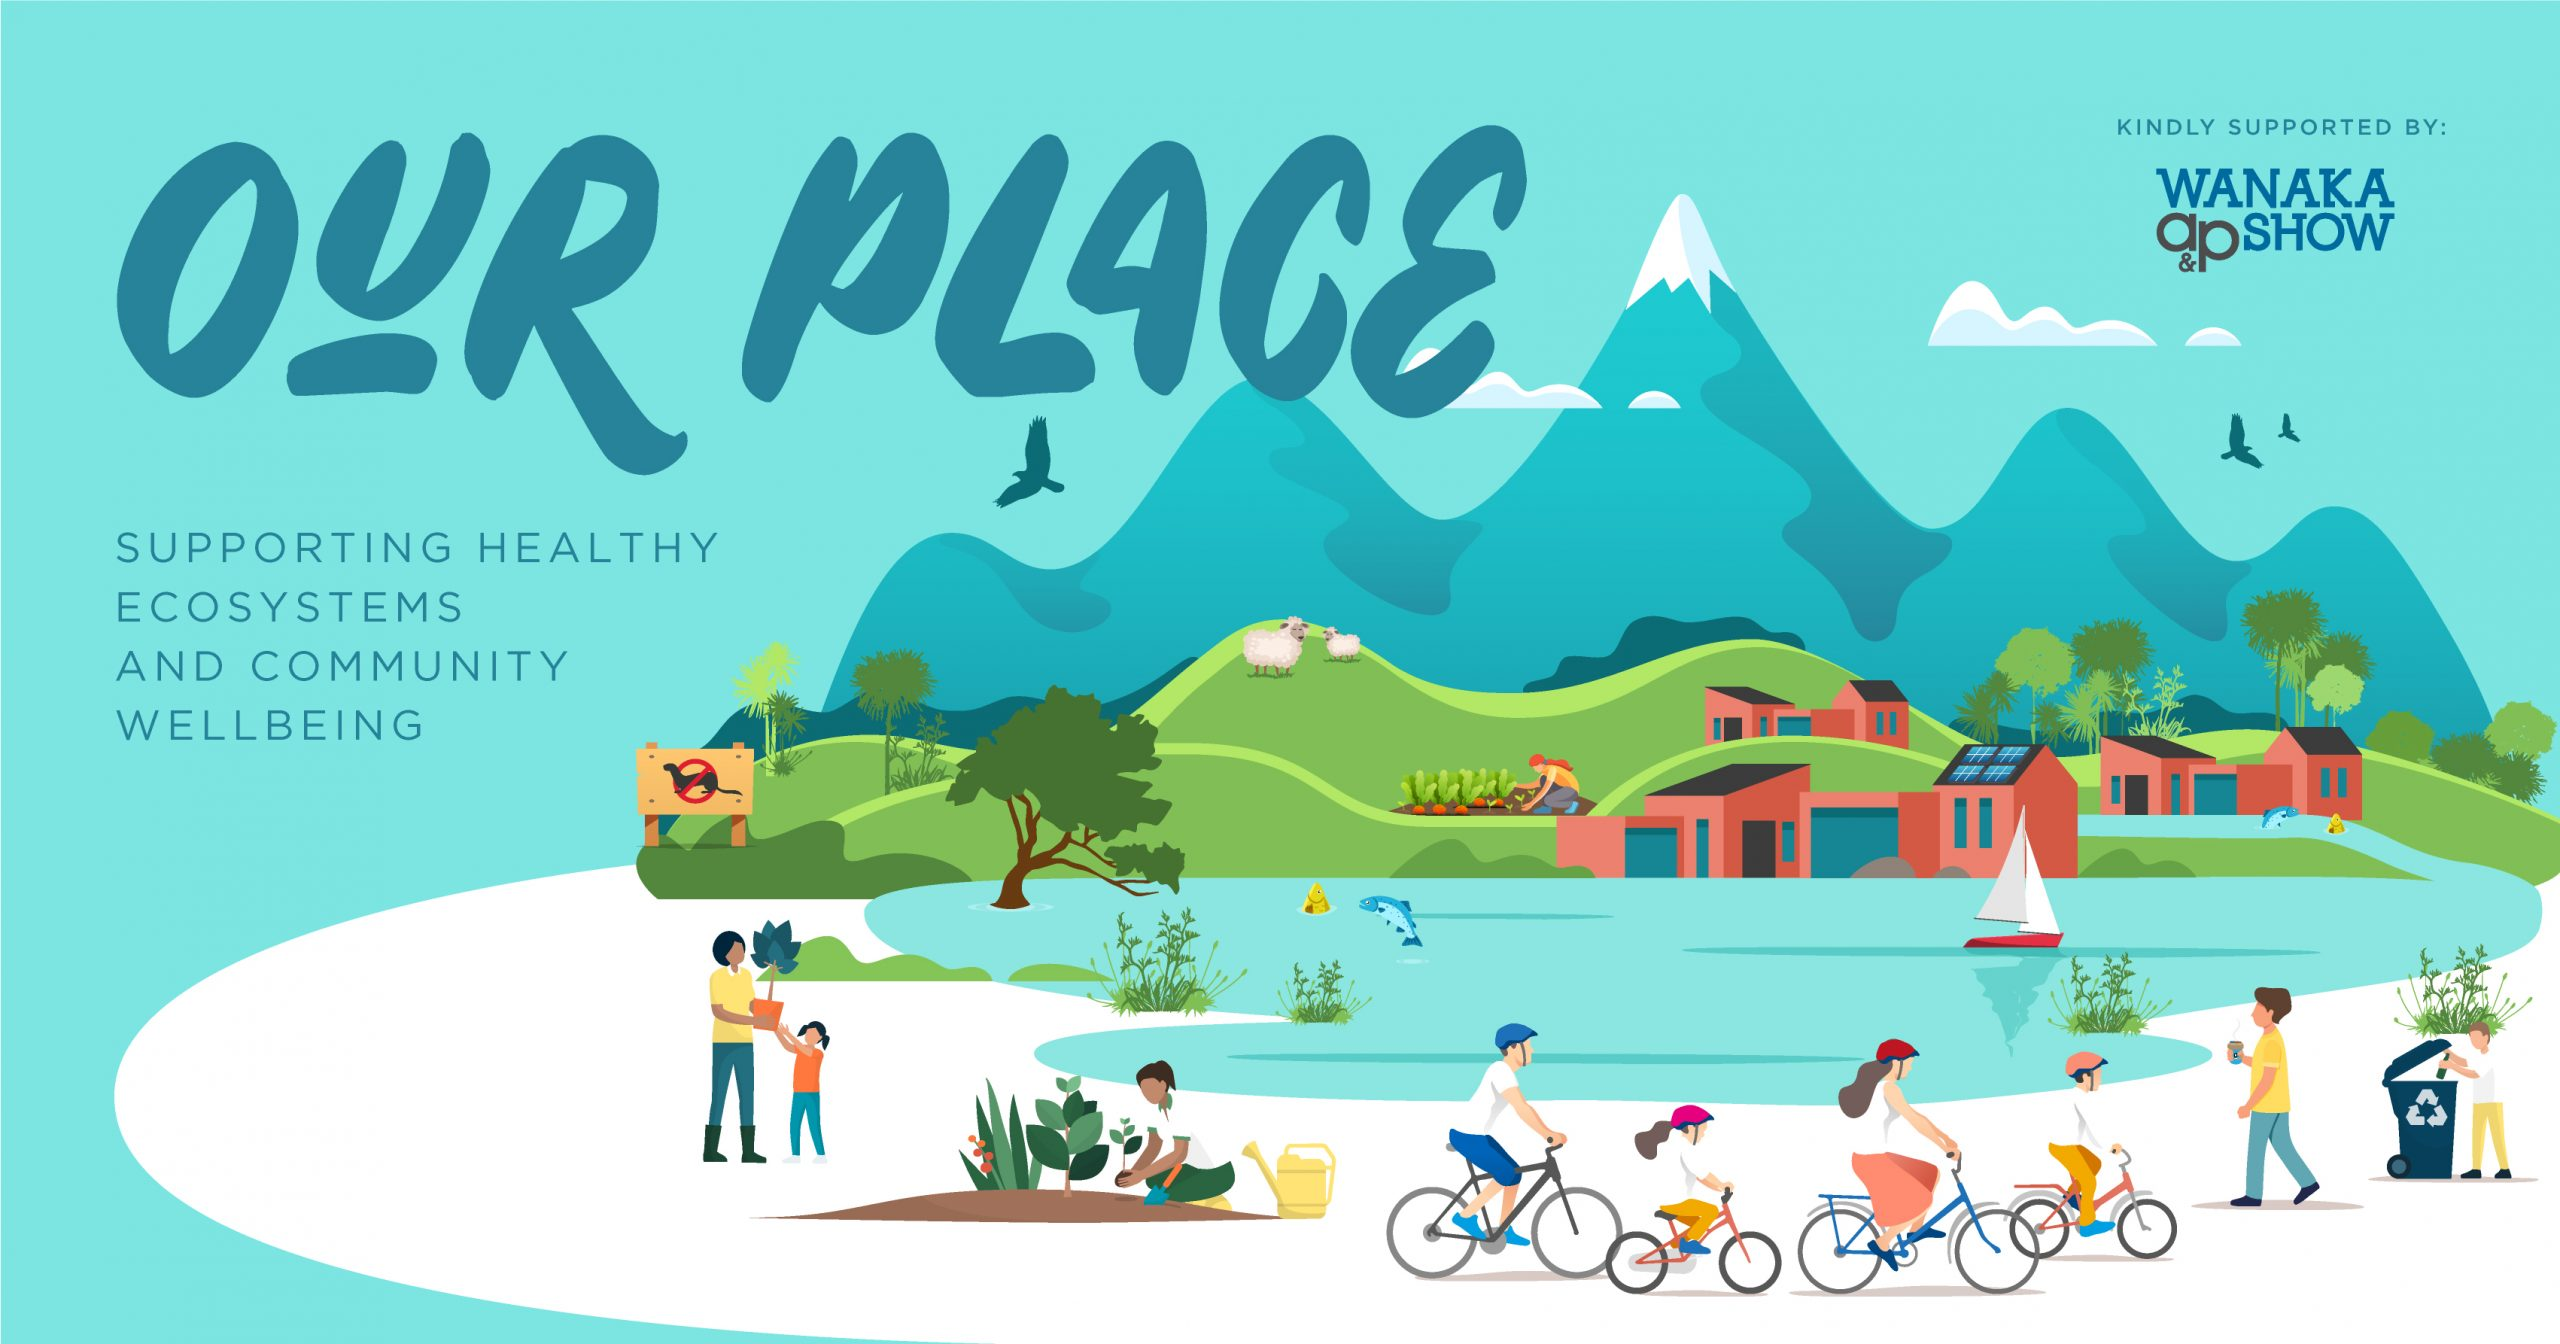 Our Place graphic showing the Wanaka landscape with various activities